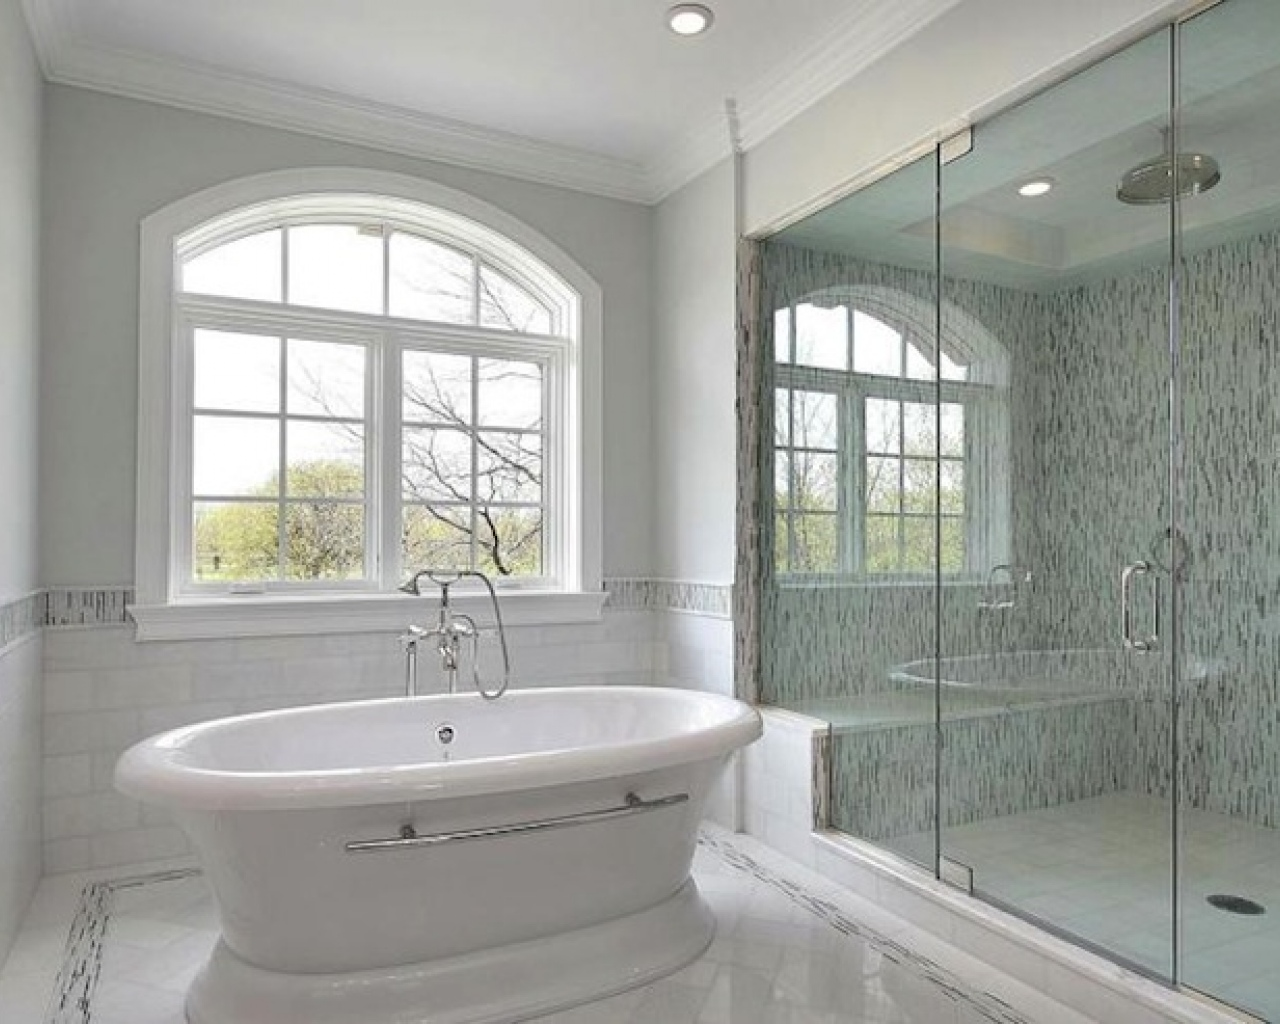 Stone and Water Bathroom Remodeling image 1